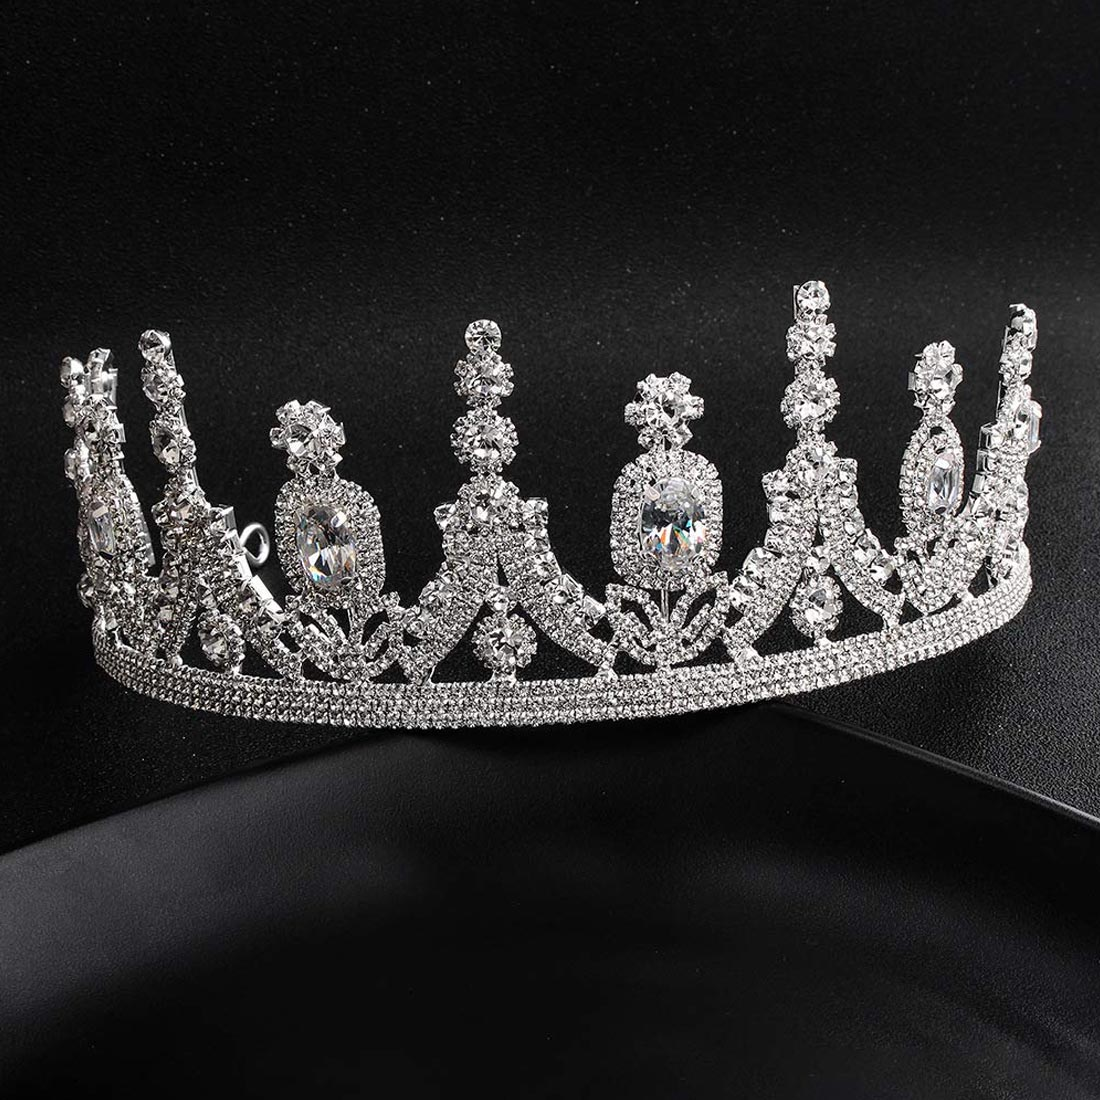 New Vintage Silver Tiara For  Pink Crystal Crowns Wedding Fashion Hair Jewelry Accessories